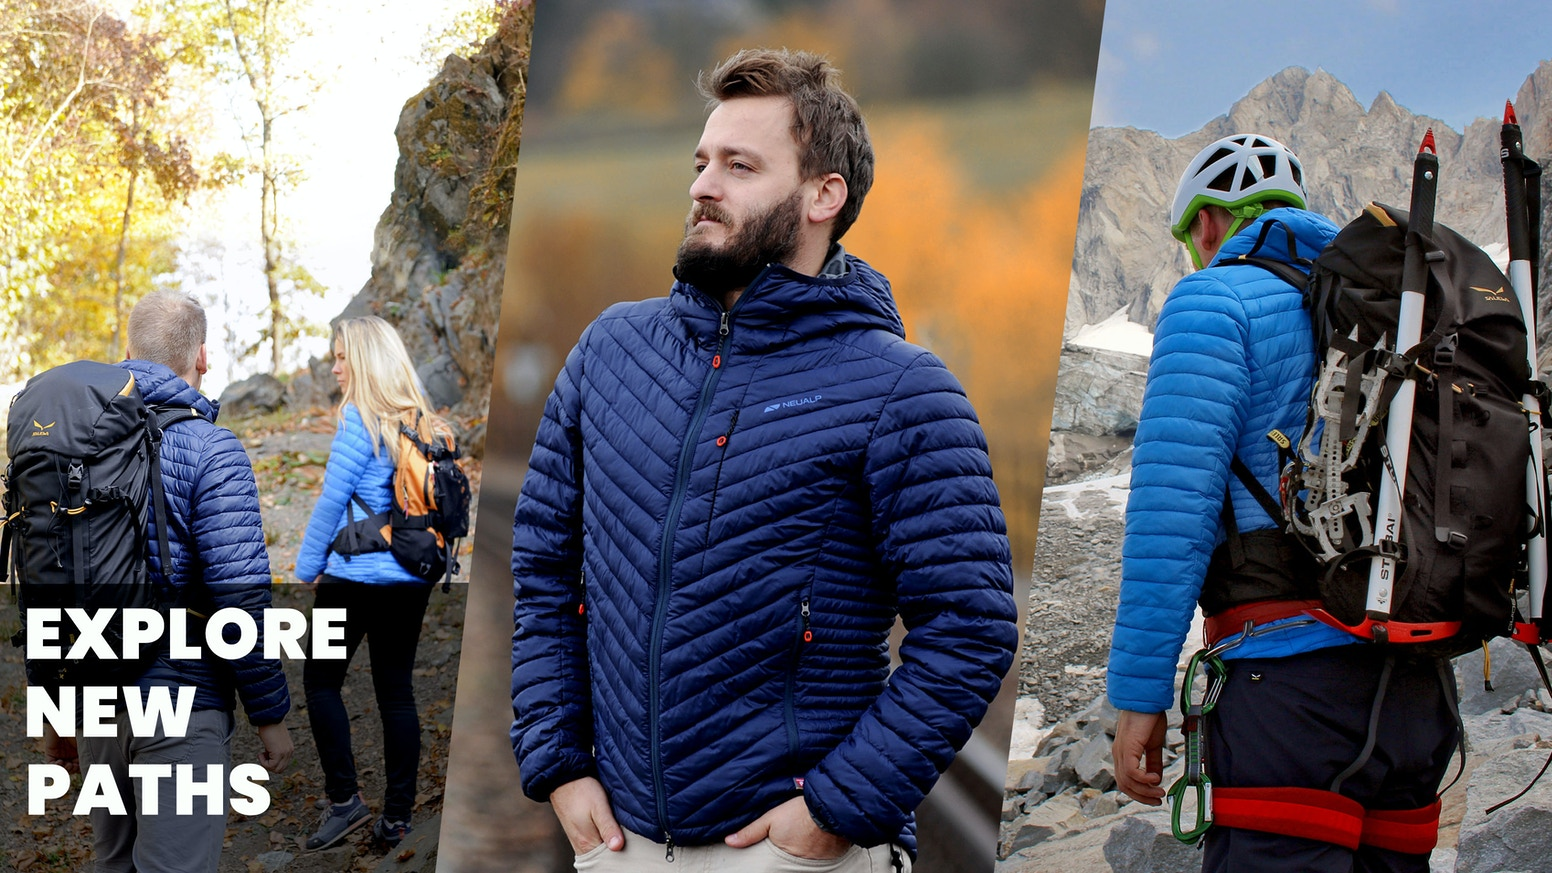 Performance & Quality in every detail. Lightweight, durable, functional. For use in all weathers and seasons with the best insulation.